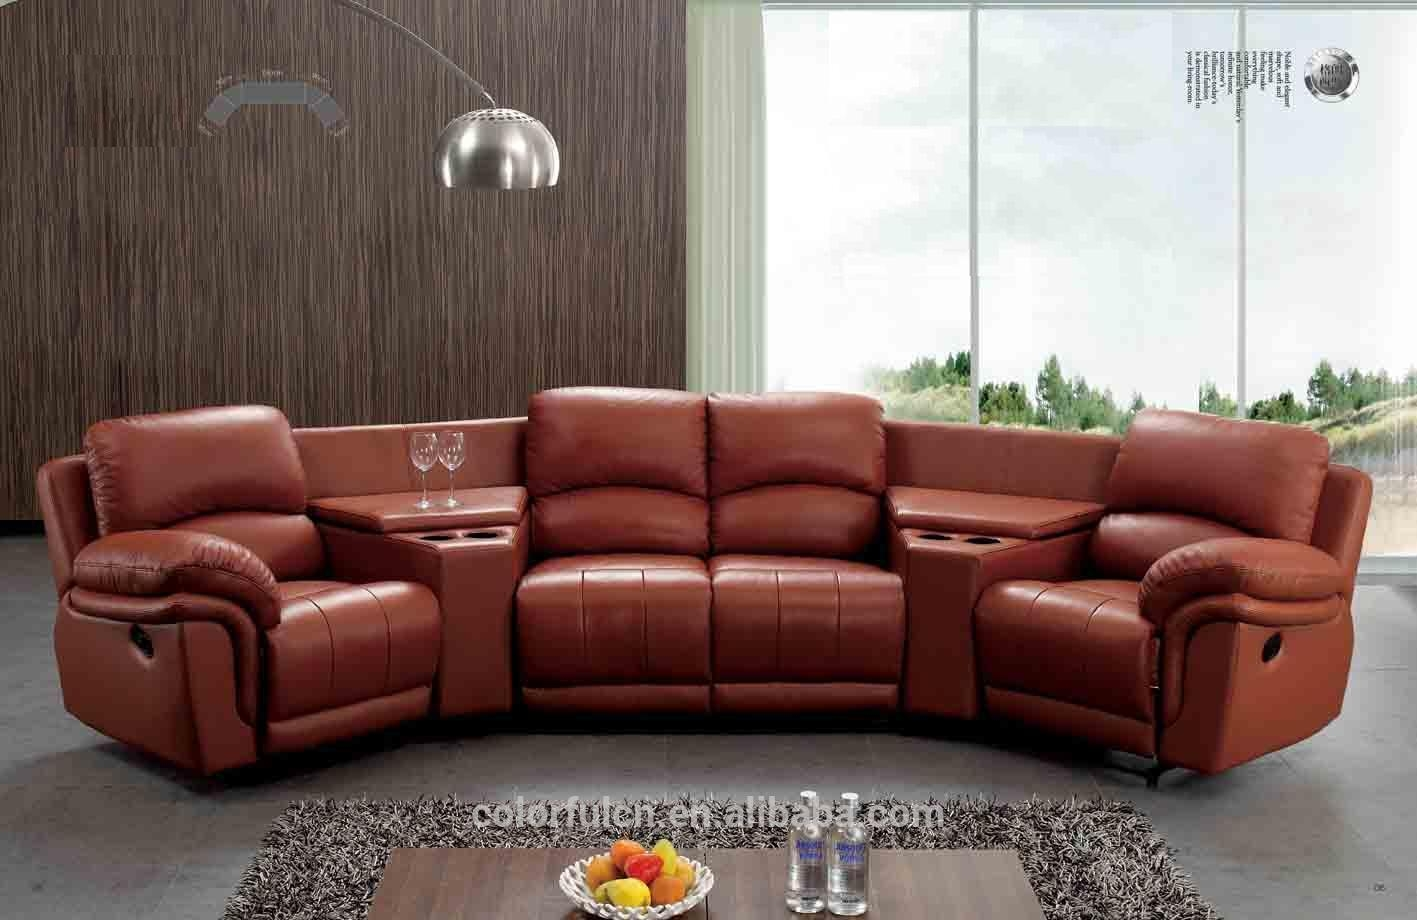 Featured Image of Semi Sofas